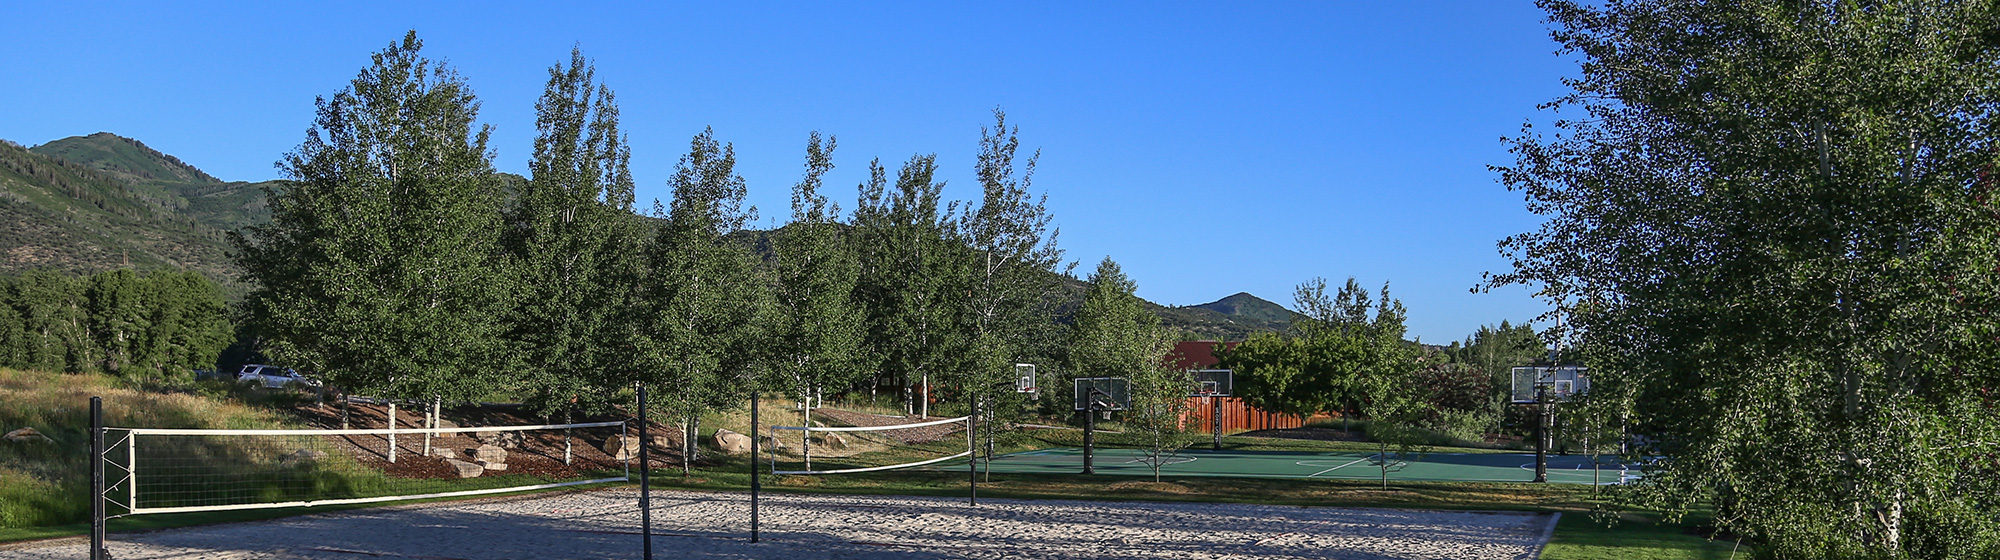 Sports facilities in park